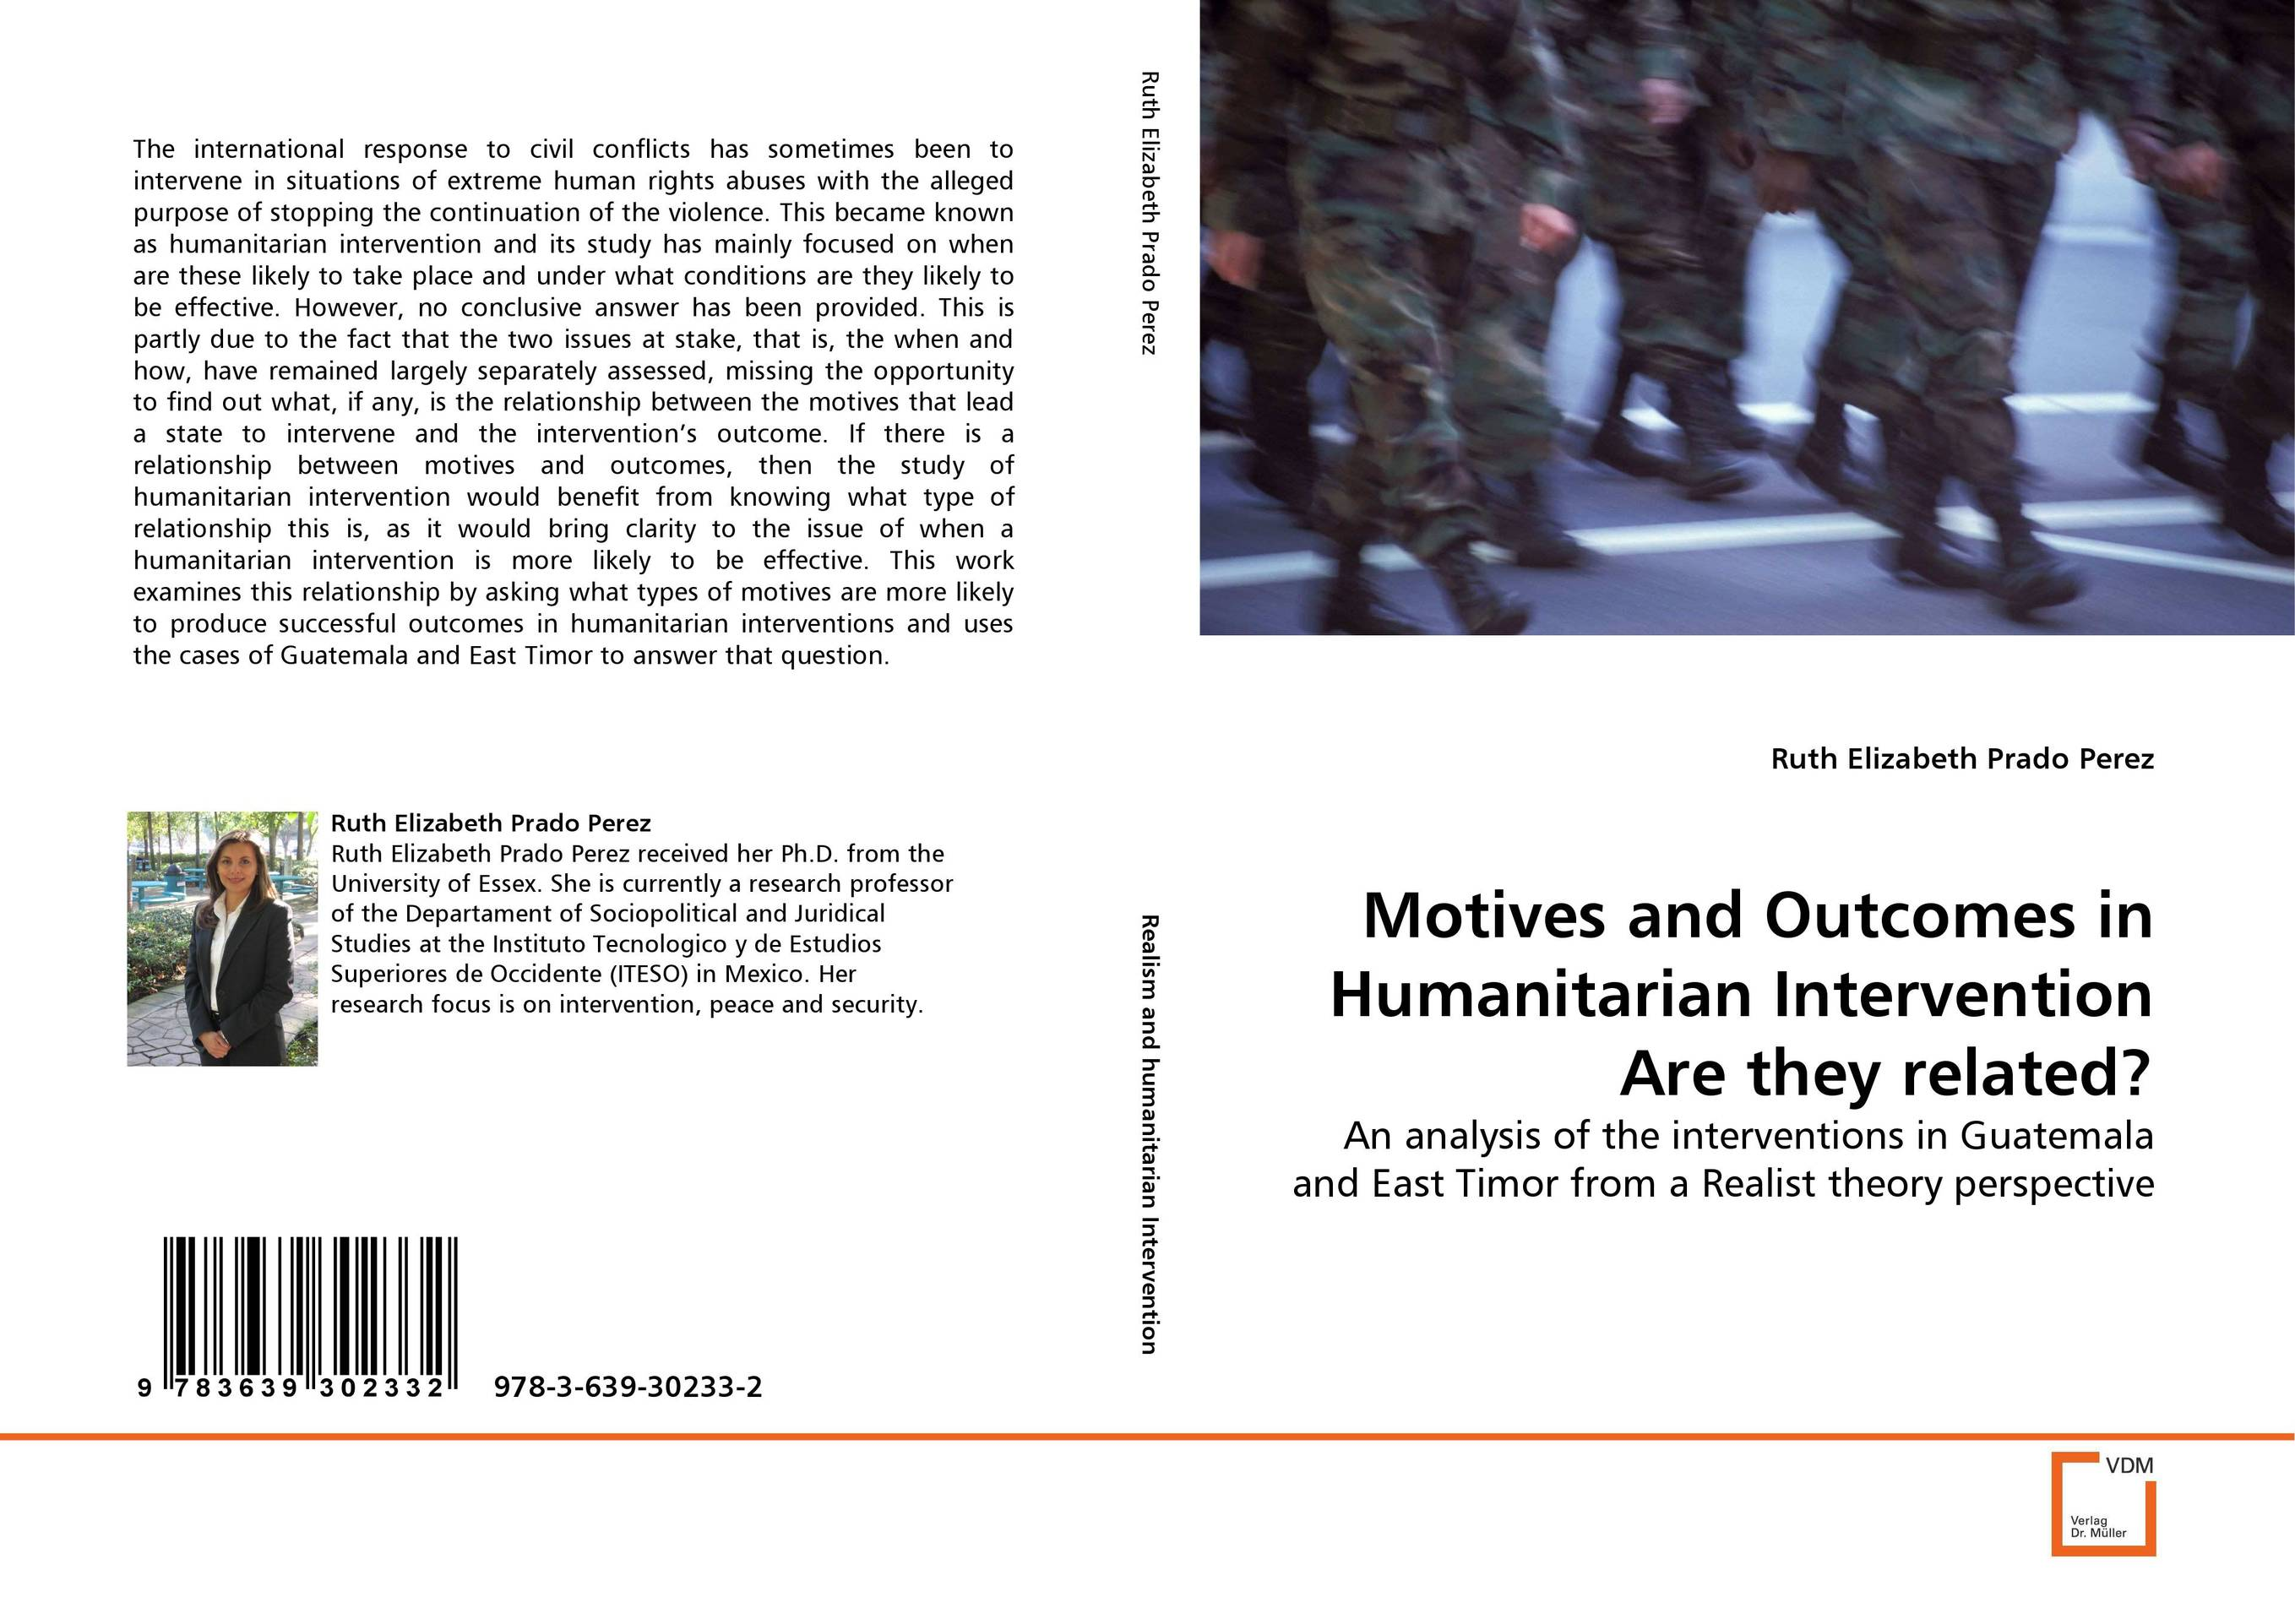 Motives and Outcomes in Humanitarian Intervention Are they related? купить